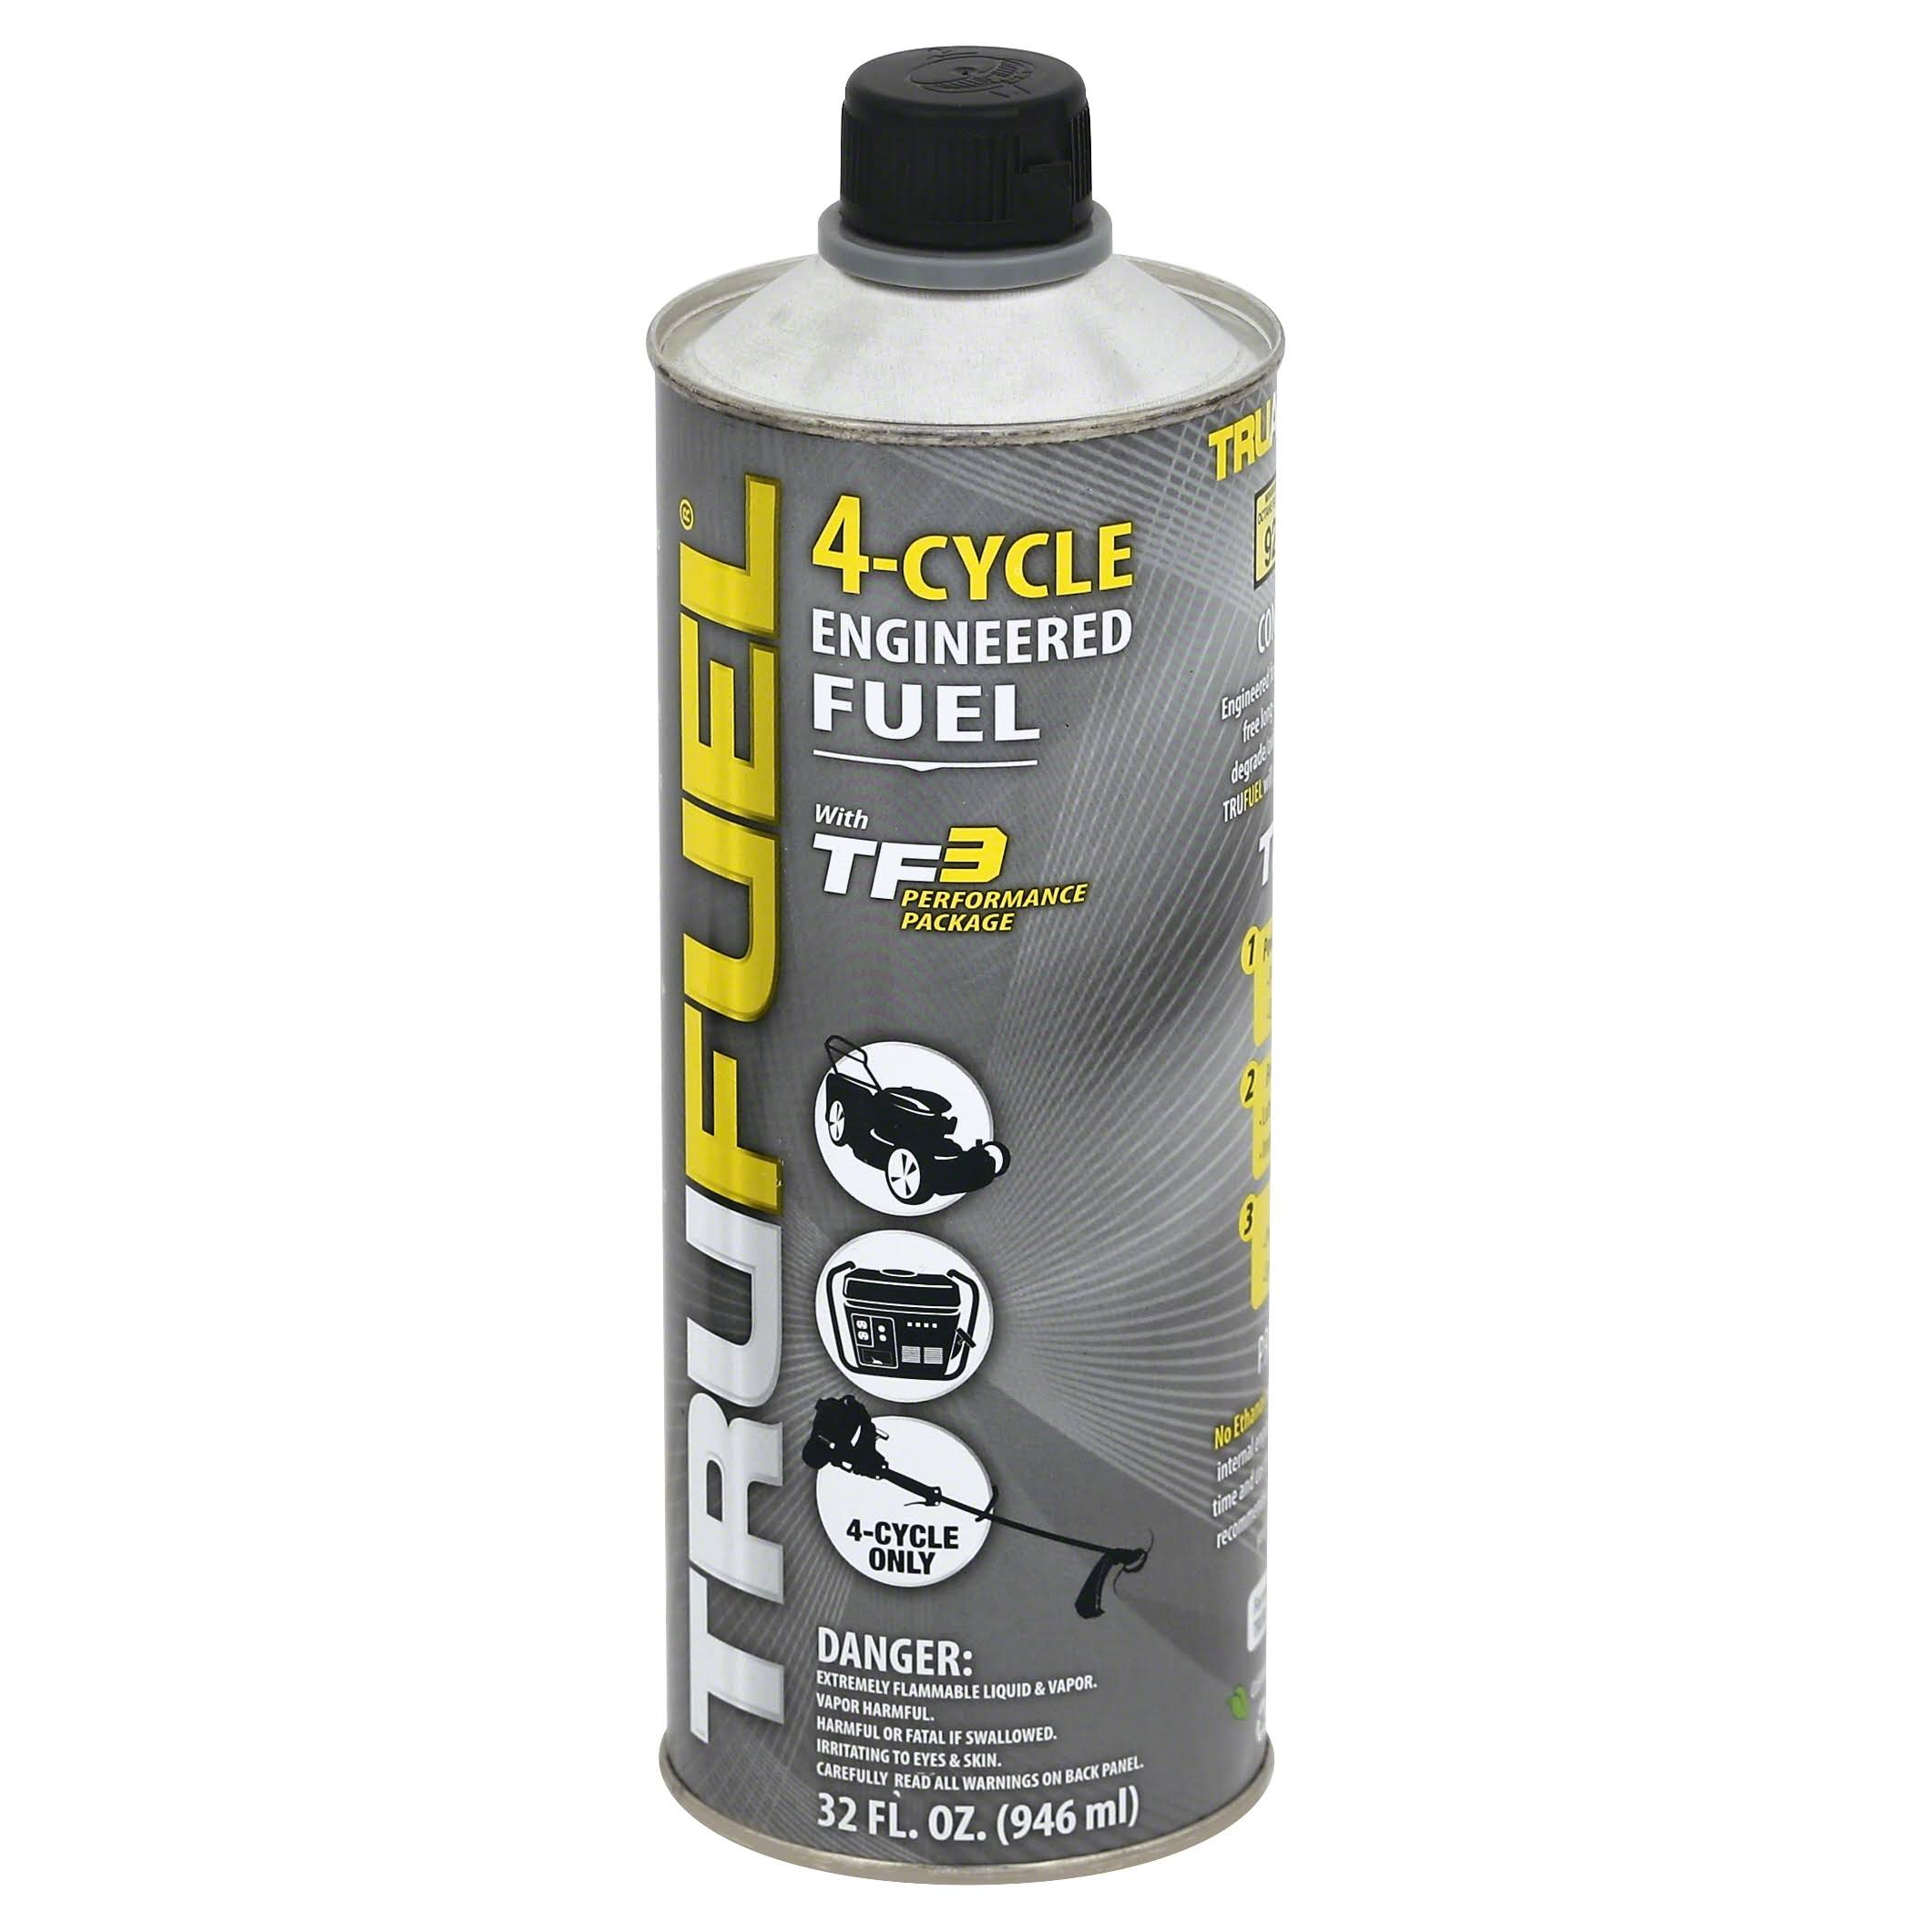 Arnold TruFuel 4-Cycle Ethanol-Free Fuel - 32oz